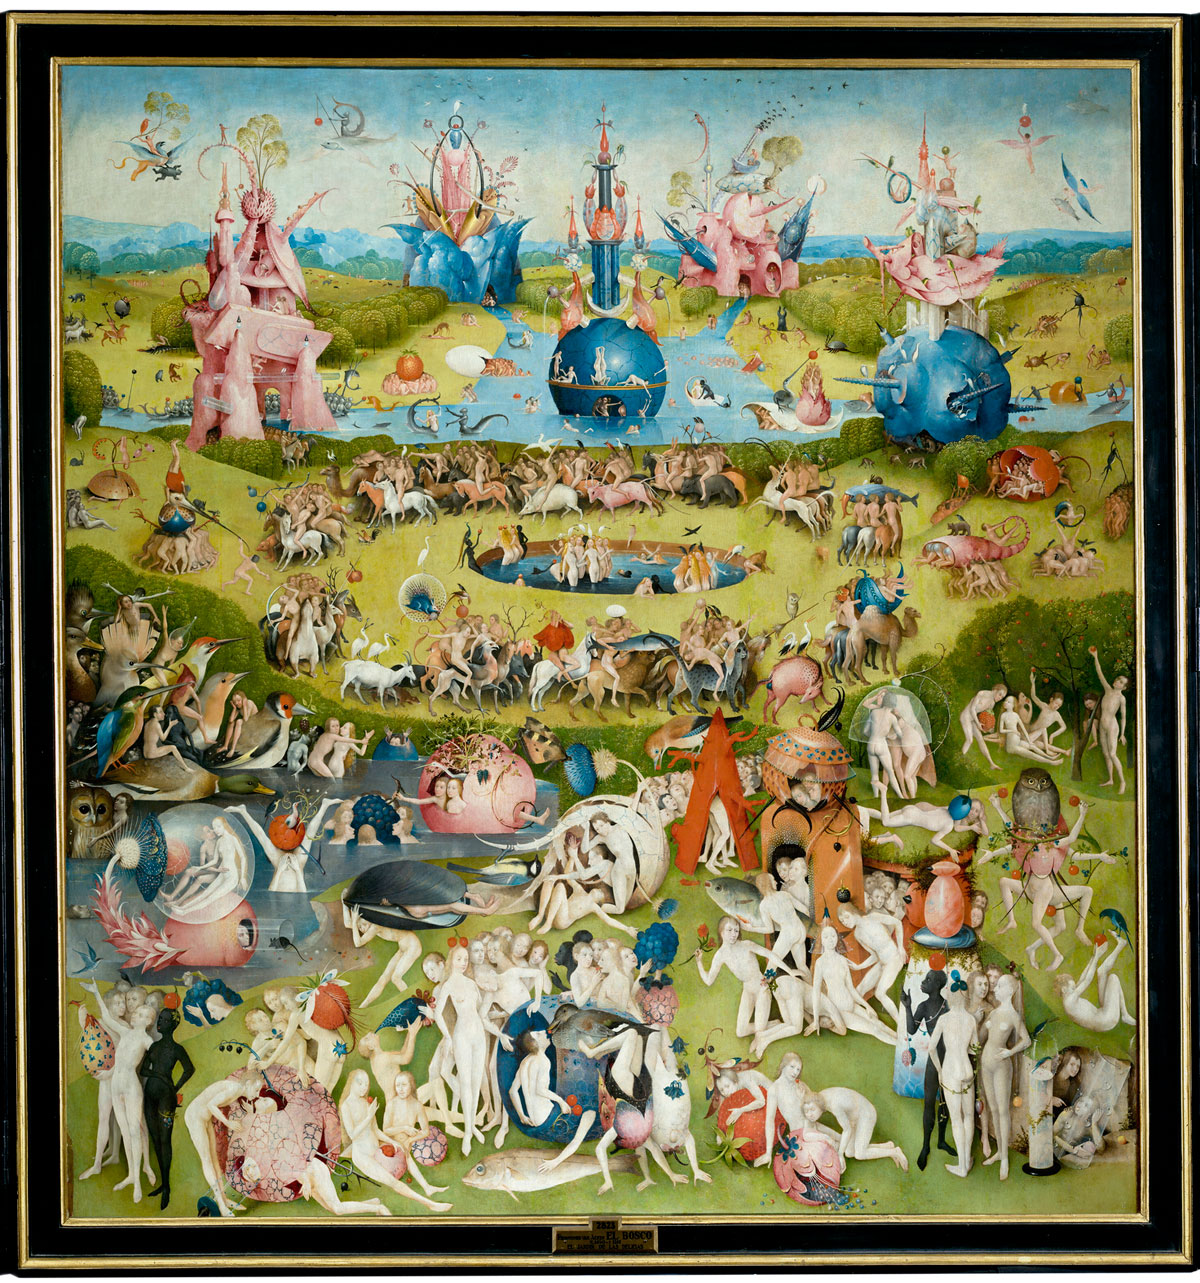 02 hieronymus bosch the garden of earthly delights